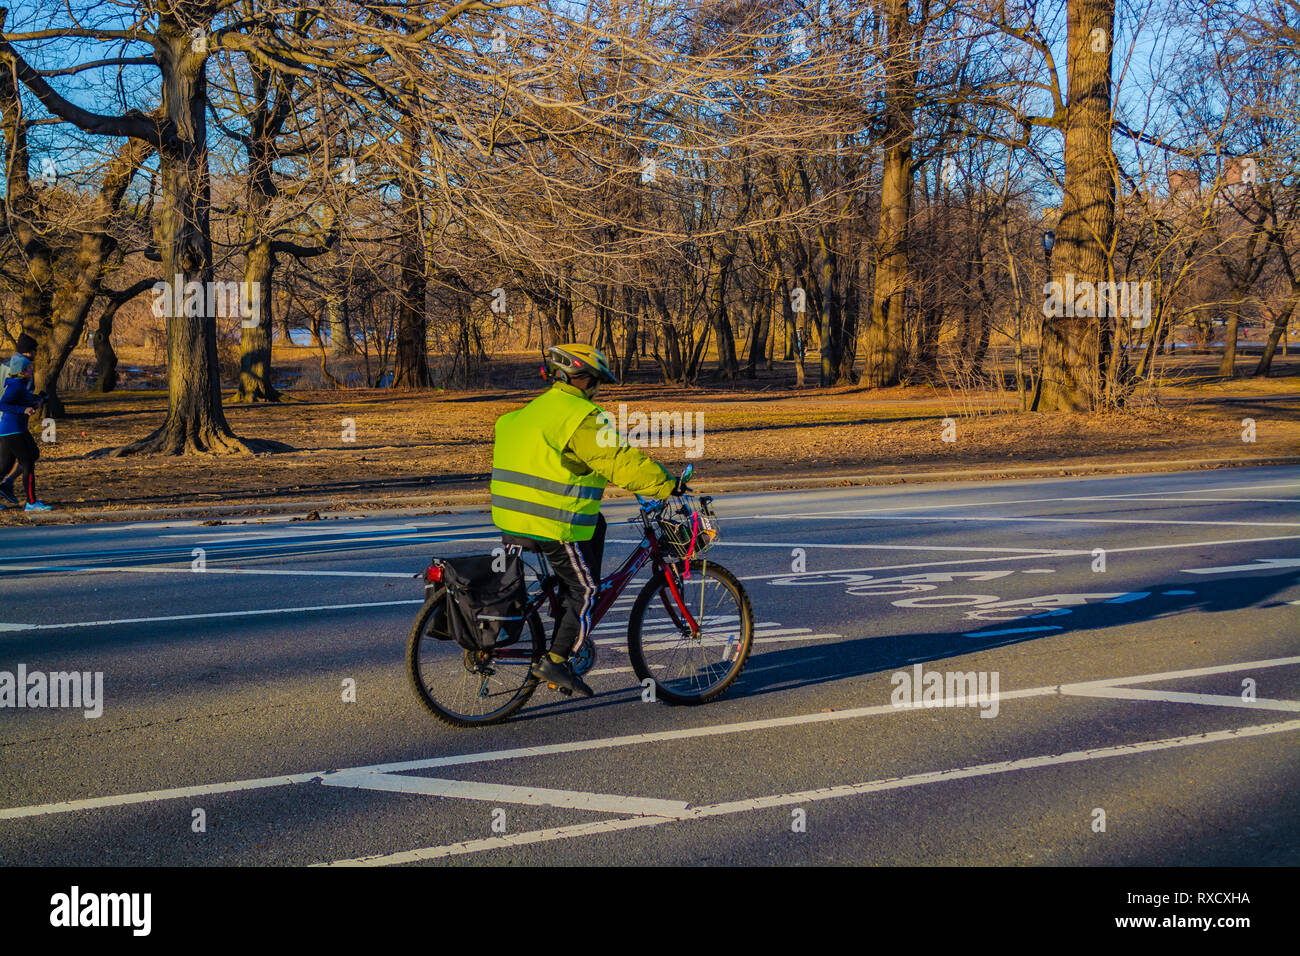 Man wearing Green vest riding bicycle on the Prospect Park road in Brooklyn New York, February - Stock Image